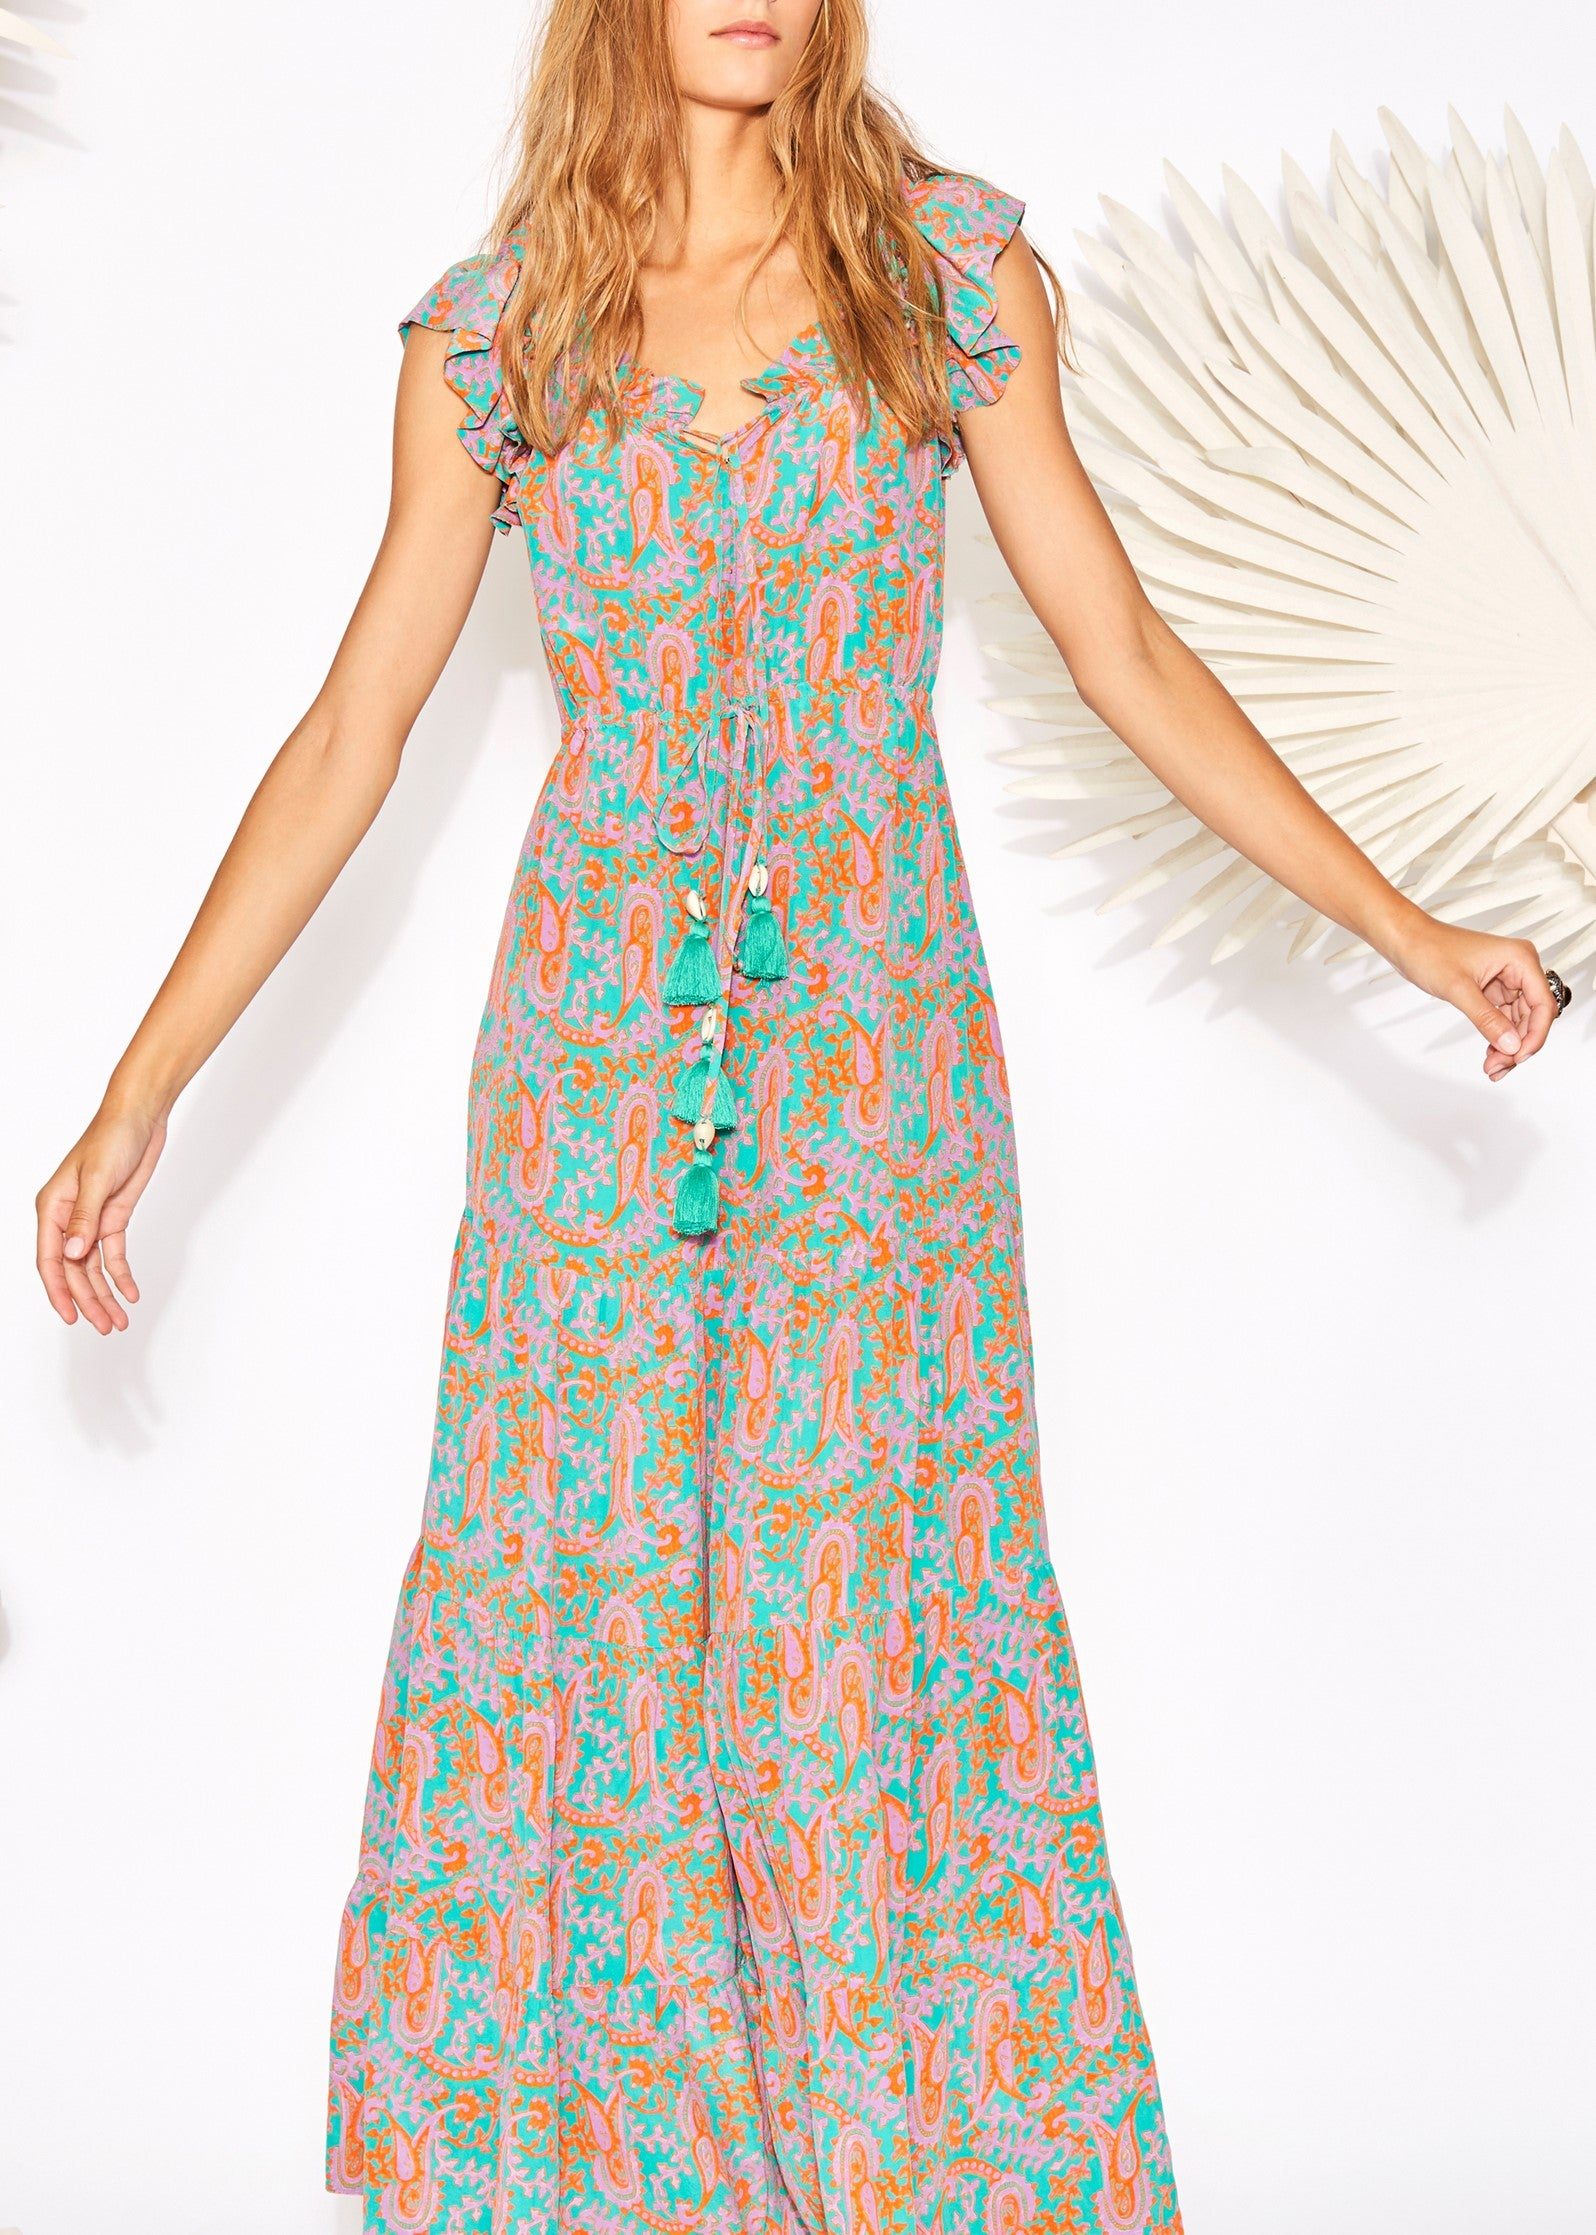 Figue Gianna dress in bahia beach paisley sea green